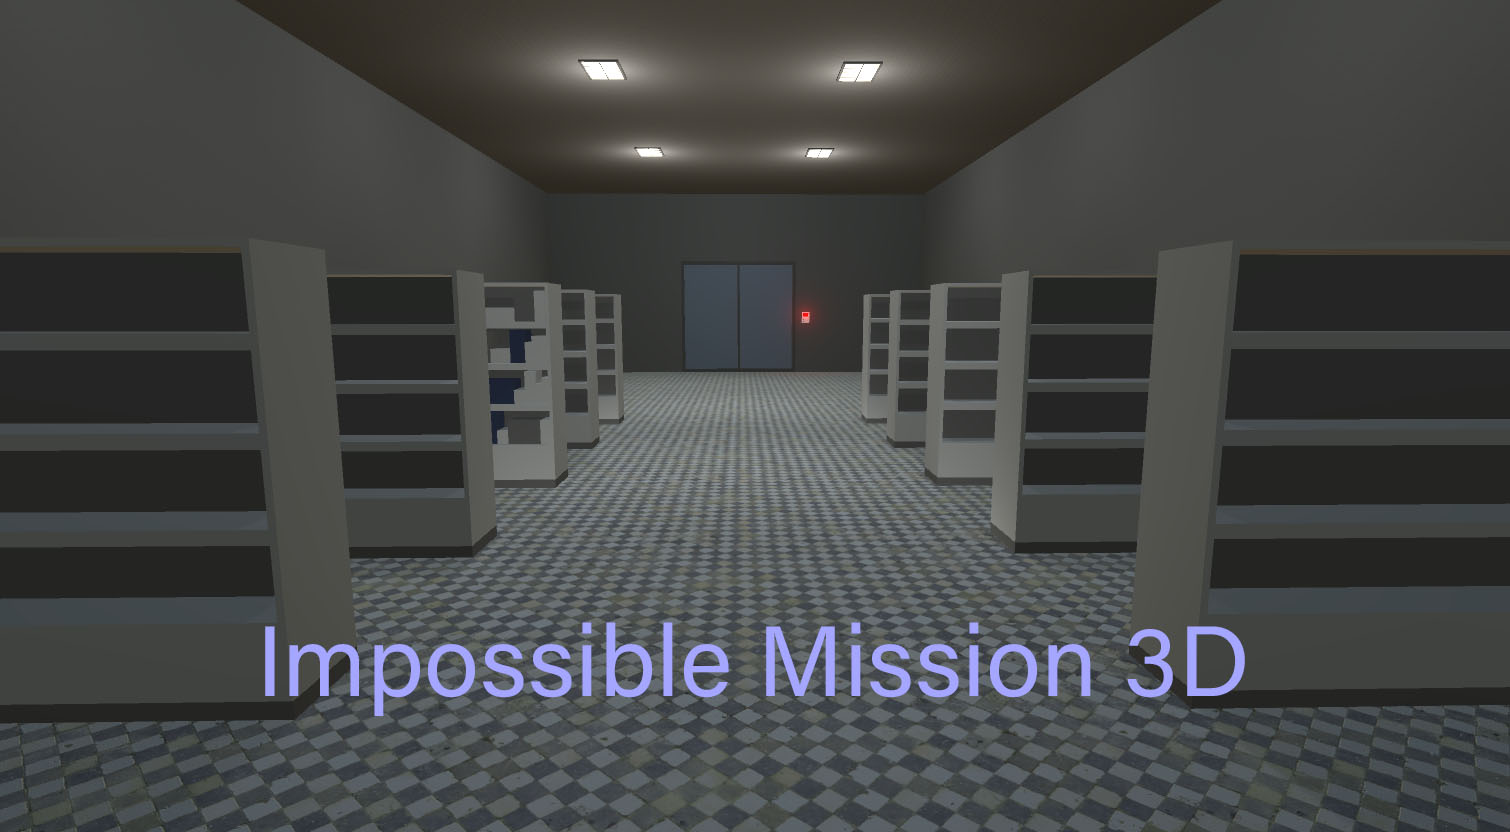 Impossible Mission 3D